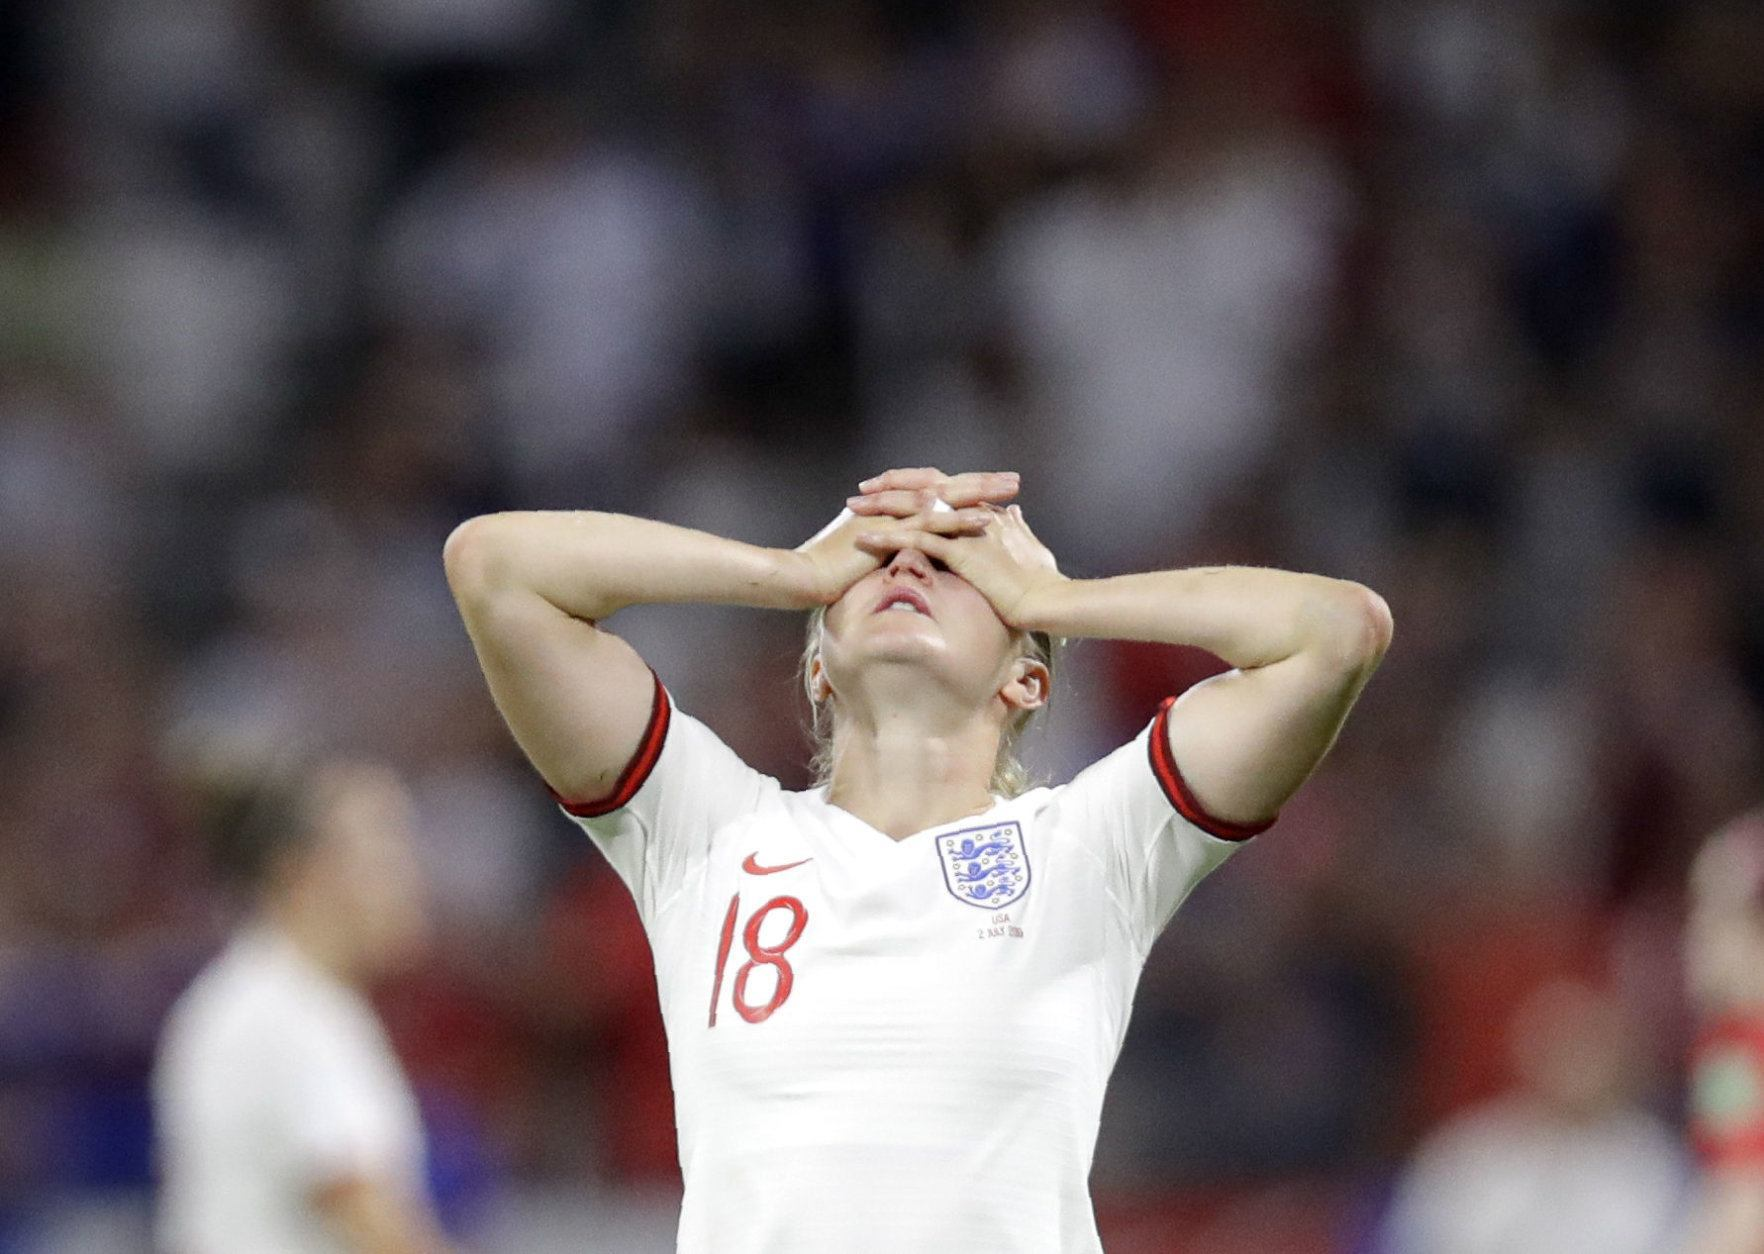 England's Ellen White covers her face at the end of the Women's World Cup semifinal soccer match between England and the United States, at the Stade de Lyon, outside Lyon, France, Tuesday, July 2, 2019. (AP Photo/Alessandra Tarantino)